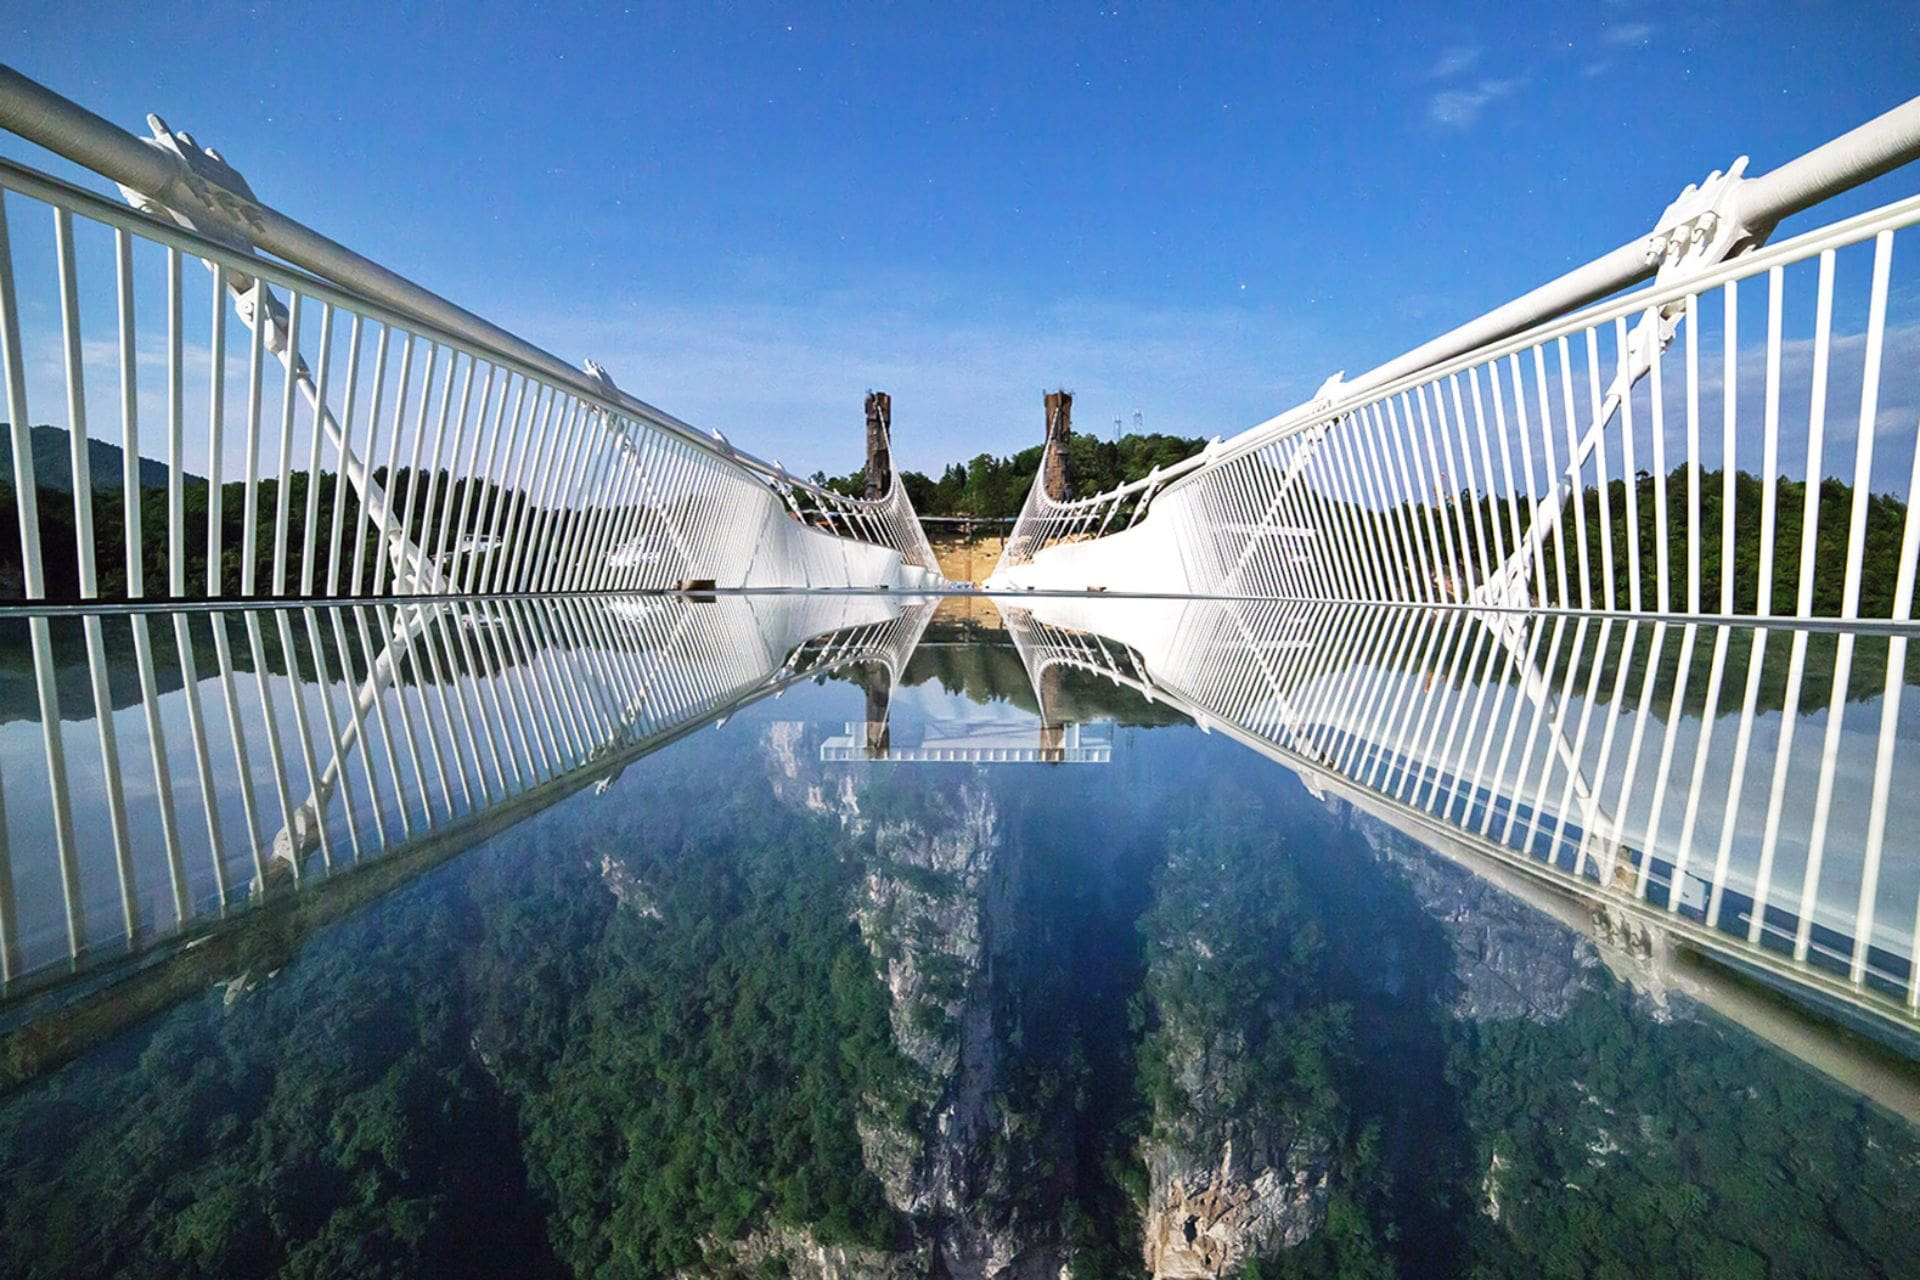 zhangjiajie-grand-canyon-glass-bridge-famous-tourist-attraction-in-china